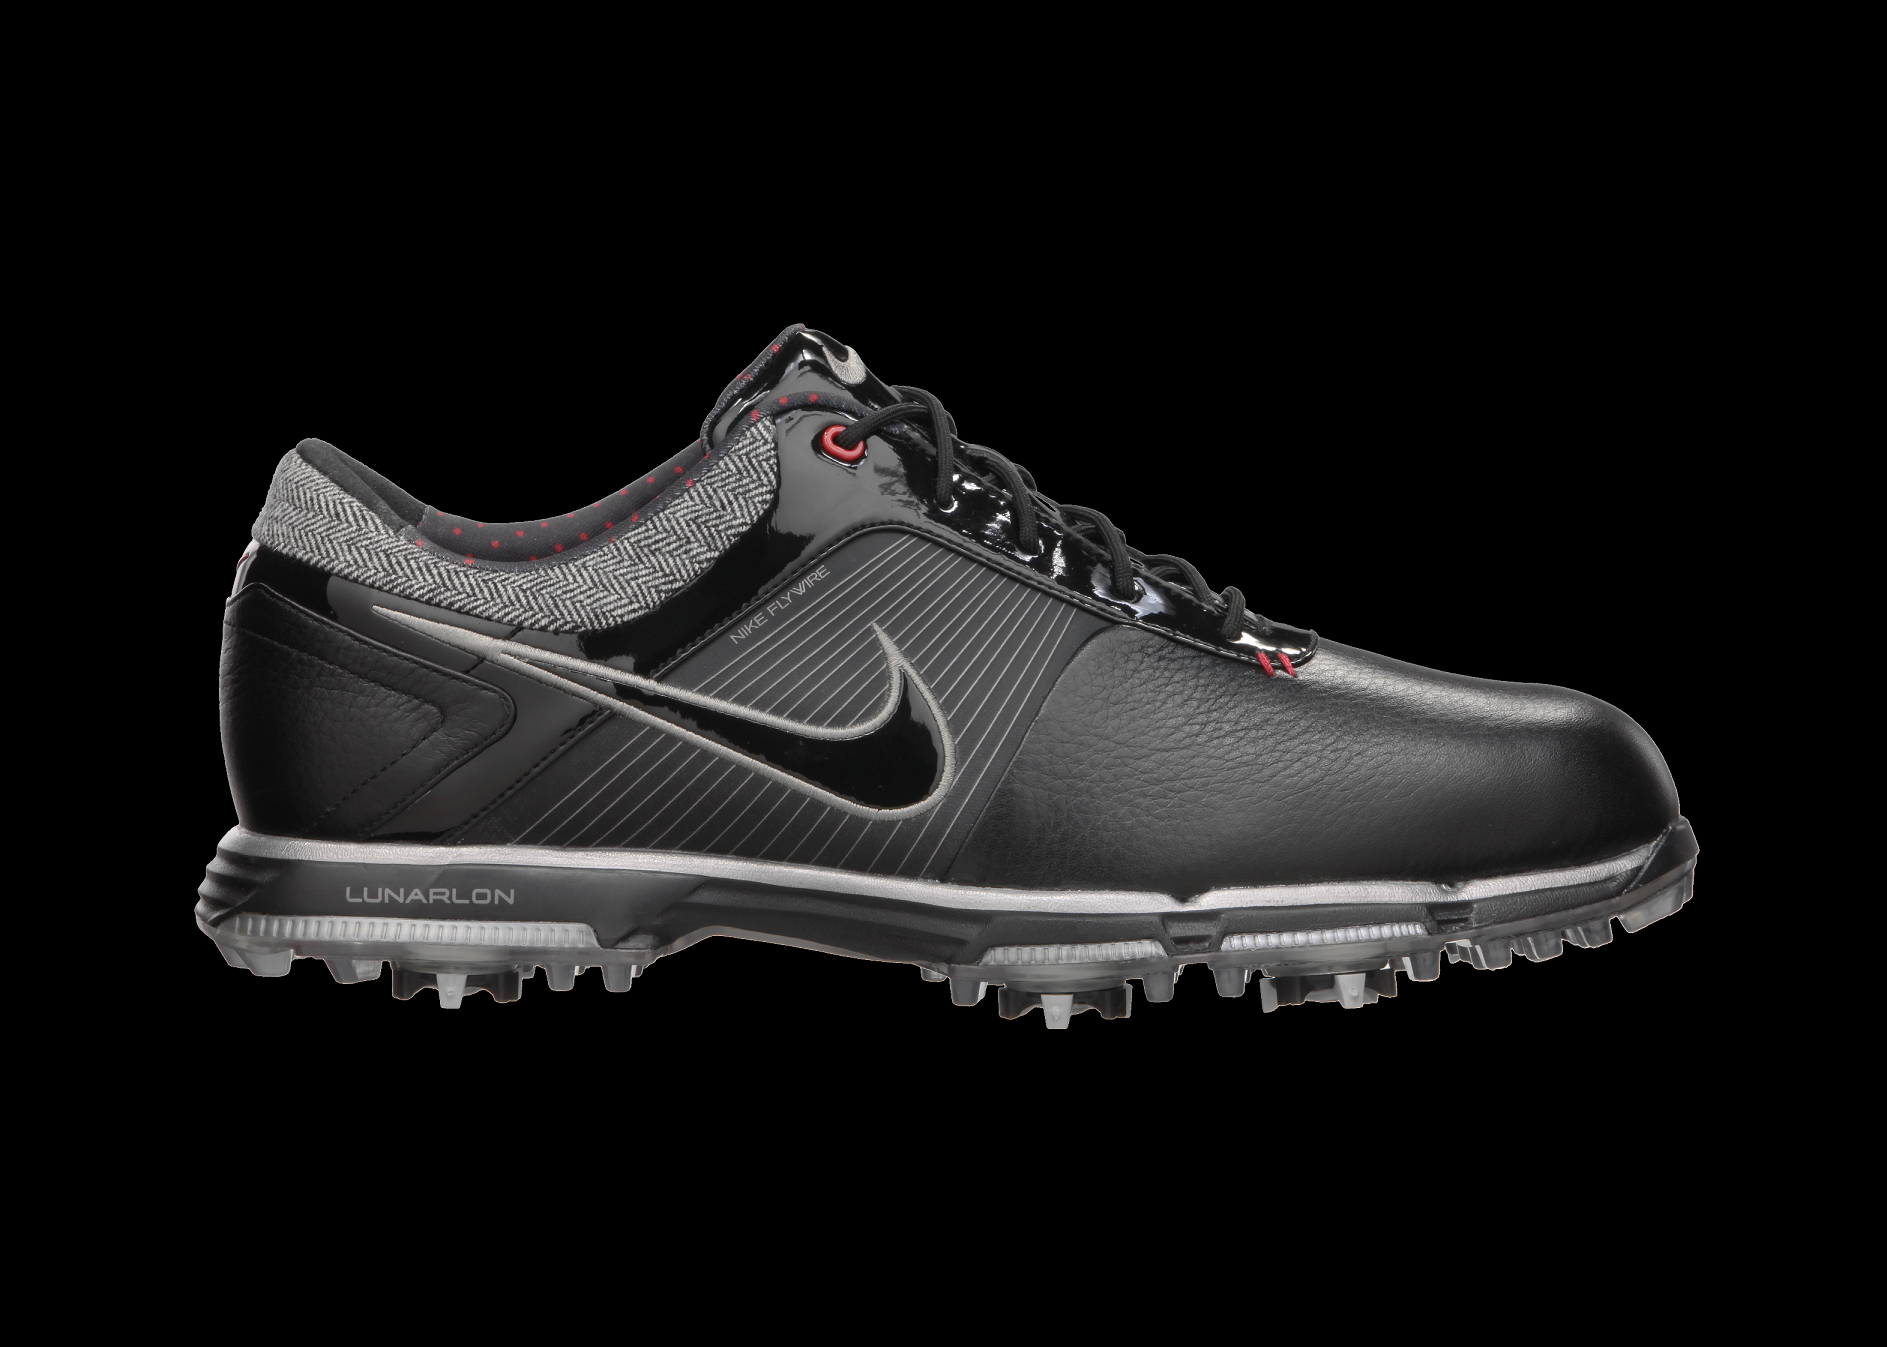 ce52196d20 Nike.com SG Nike Lunar Control Golf Shoe Old-World Style Mixed With  Next-Generation Performance ...